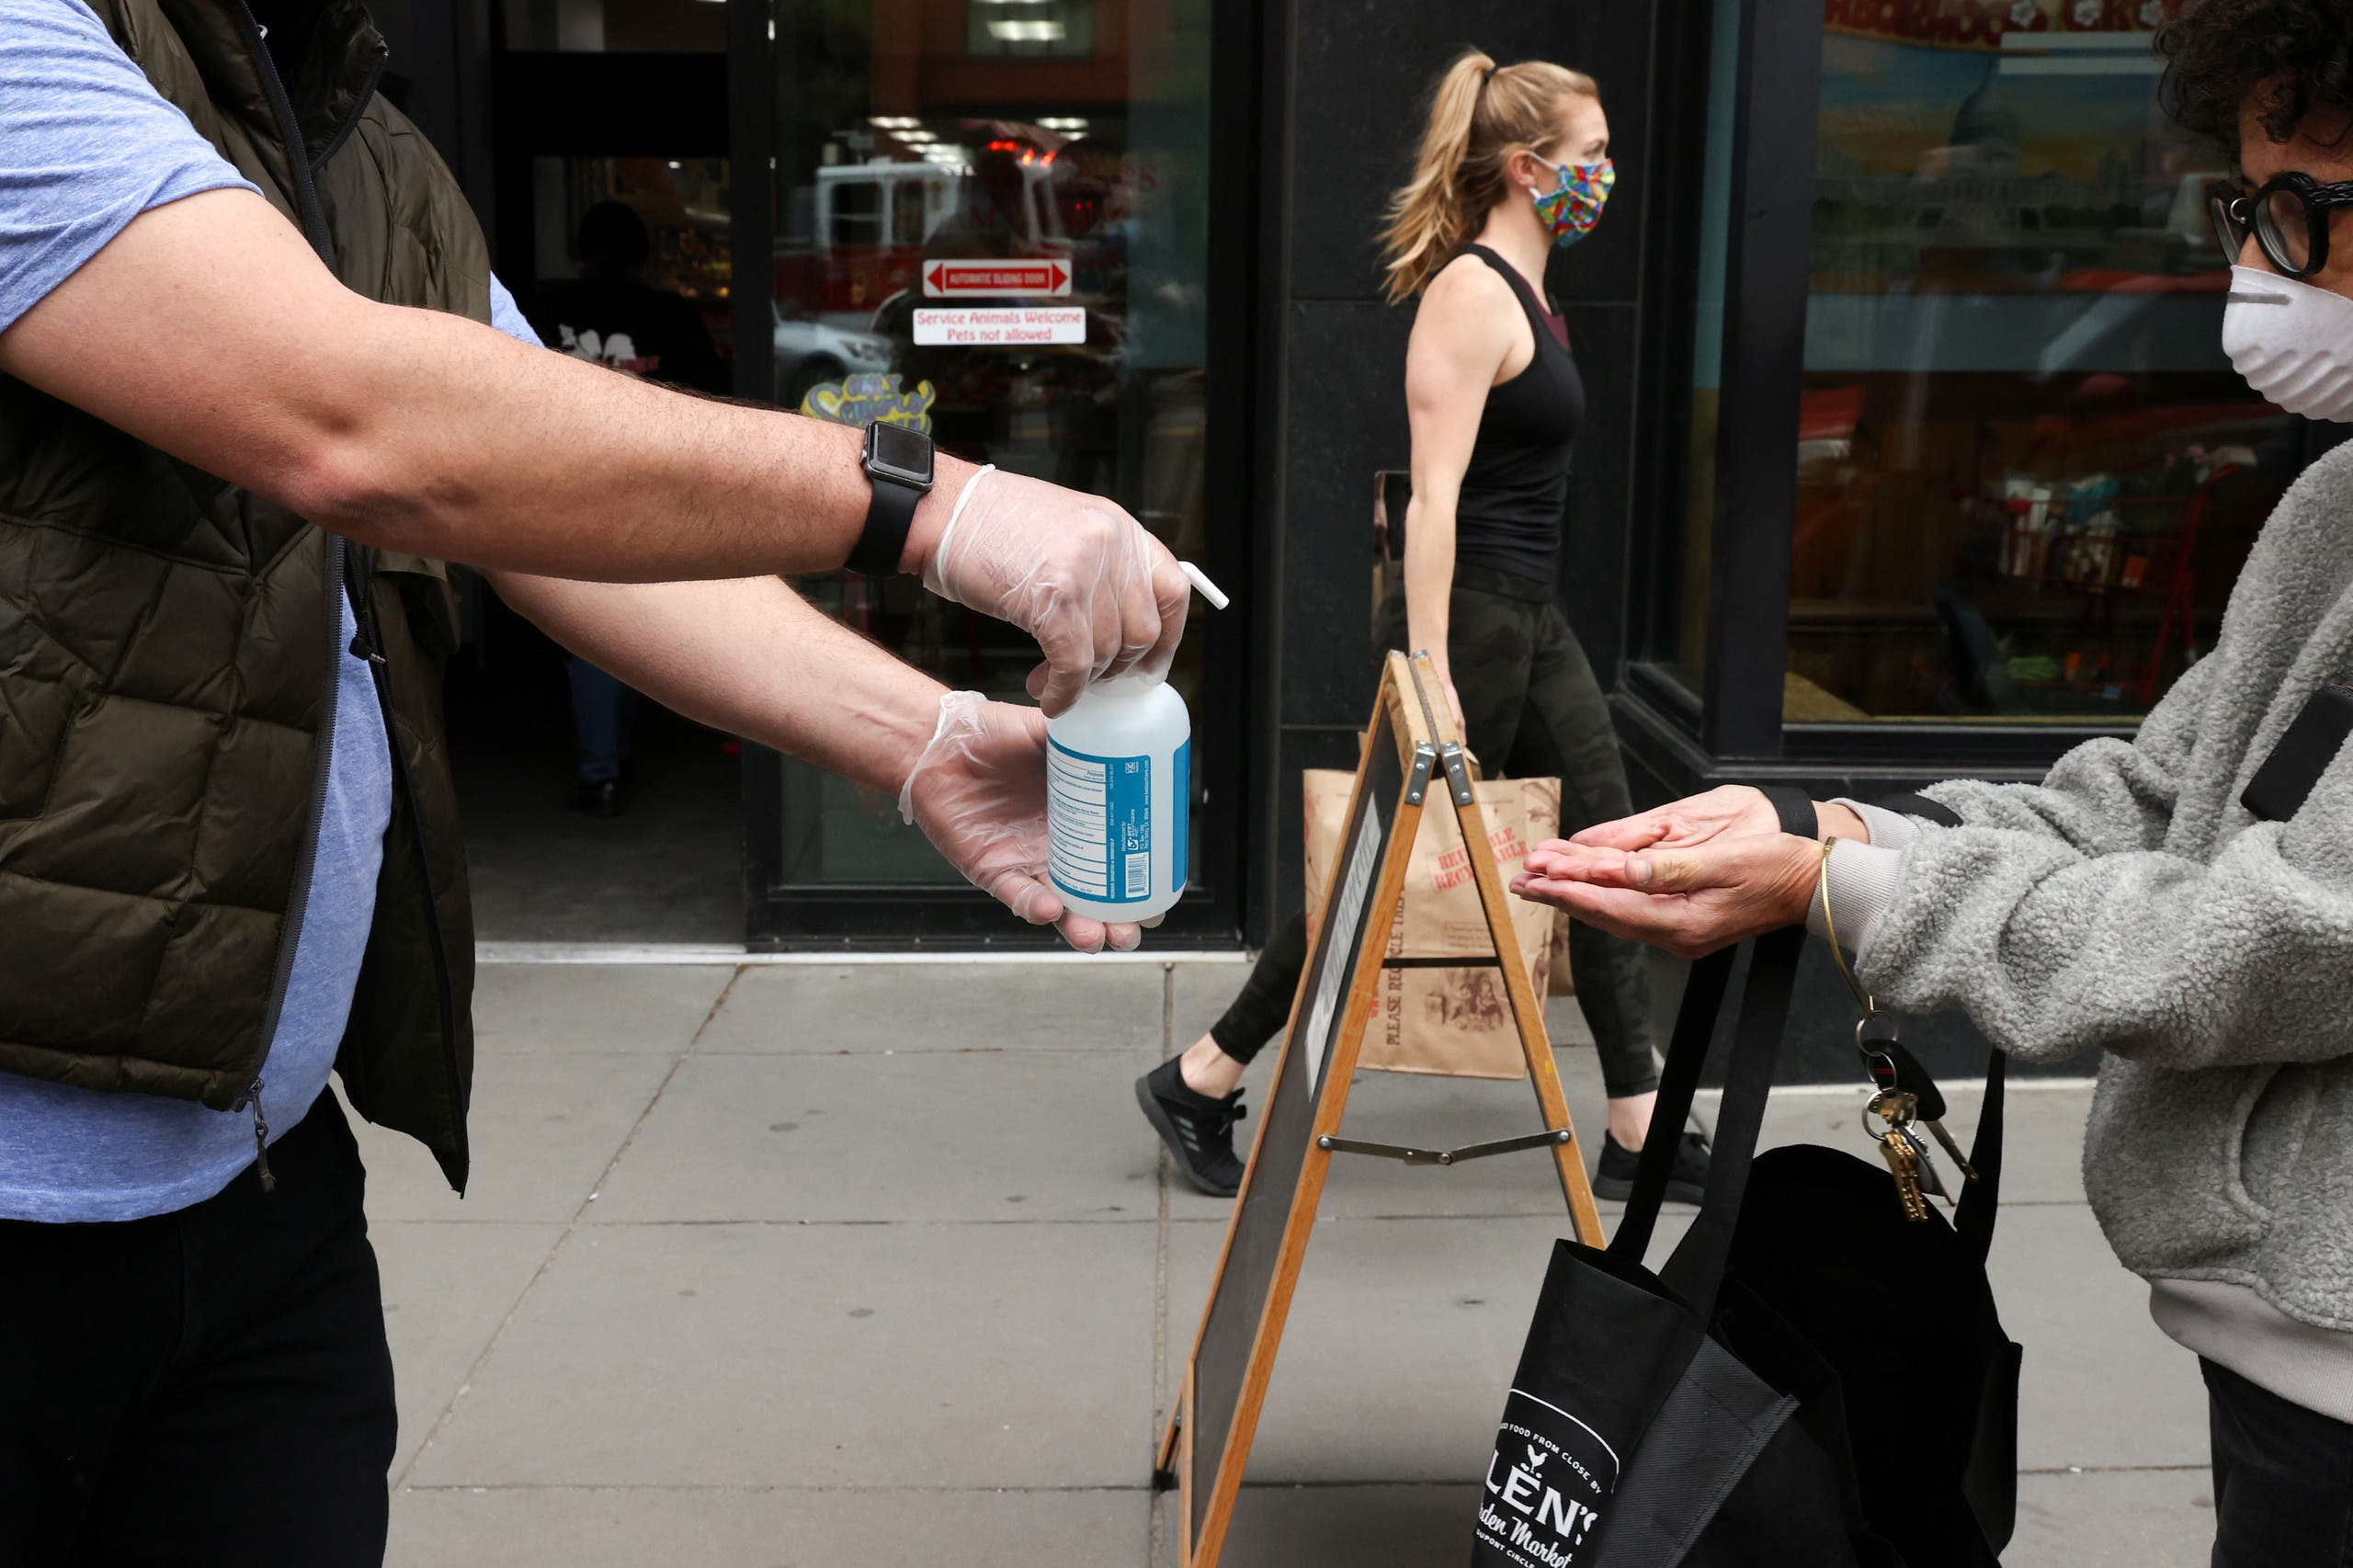 A store worker offers hand sanitizer to shoppers, during the coronavirus disease (COVID-19) outbreak, as they wait in line on the sidewalk outside a grocery store in Washington, U.S., April 14, 2020. (Reuters)